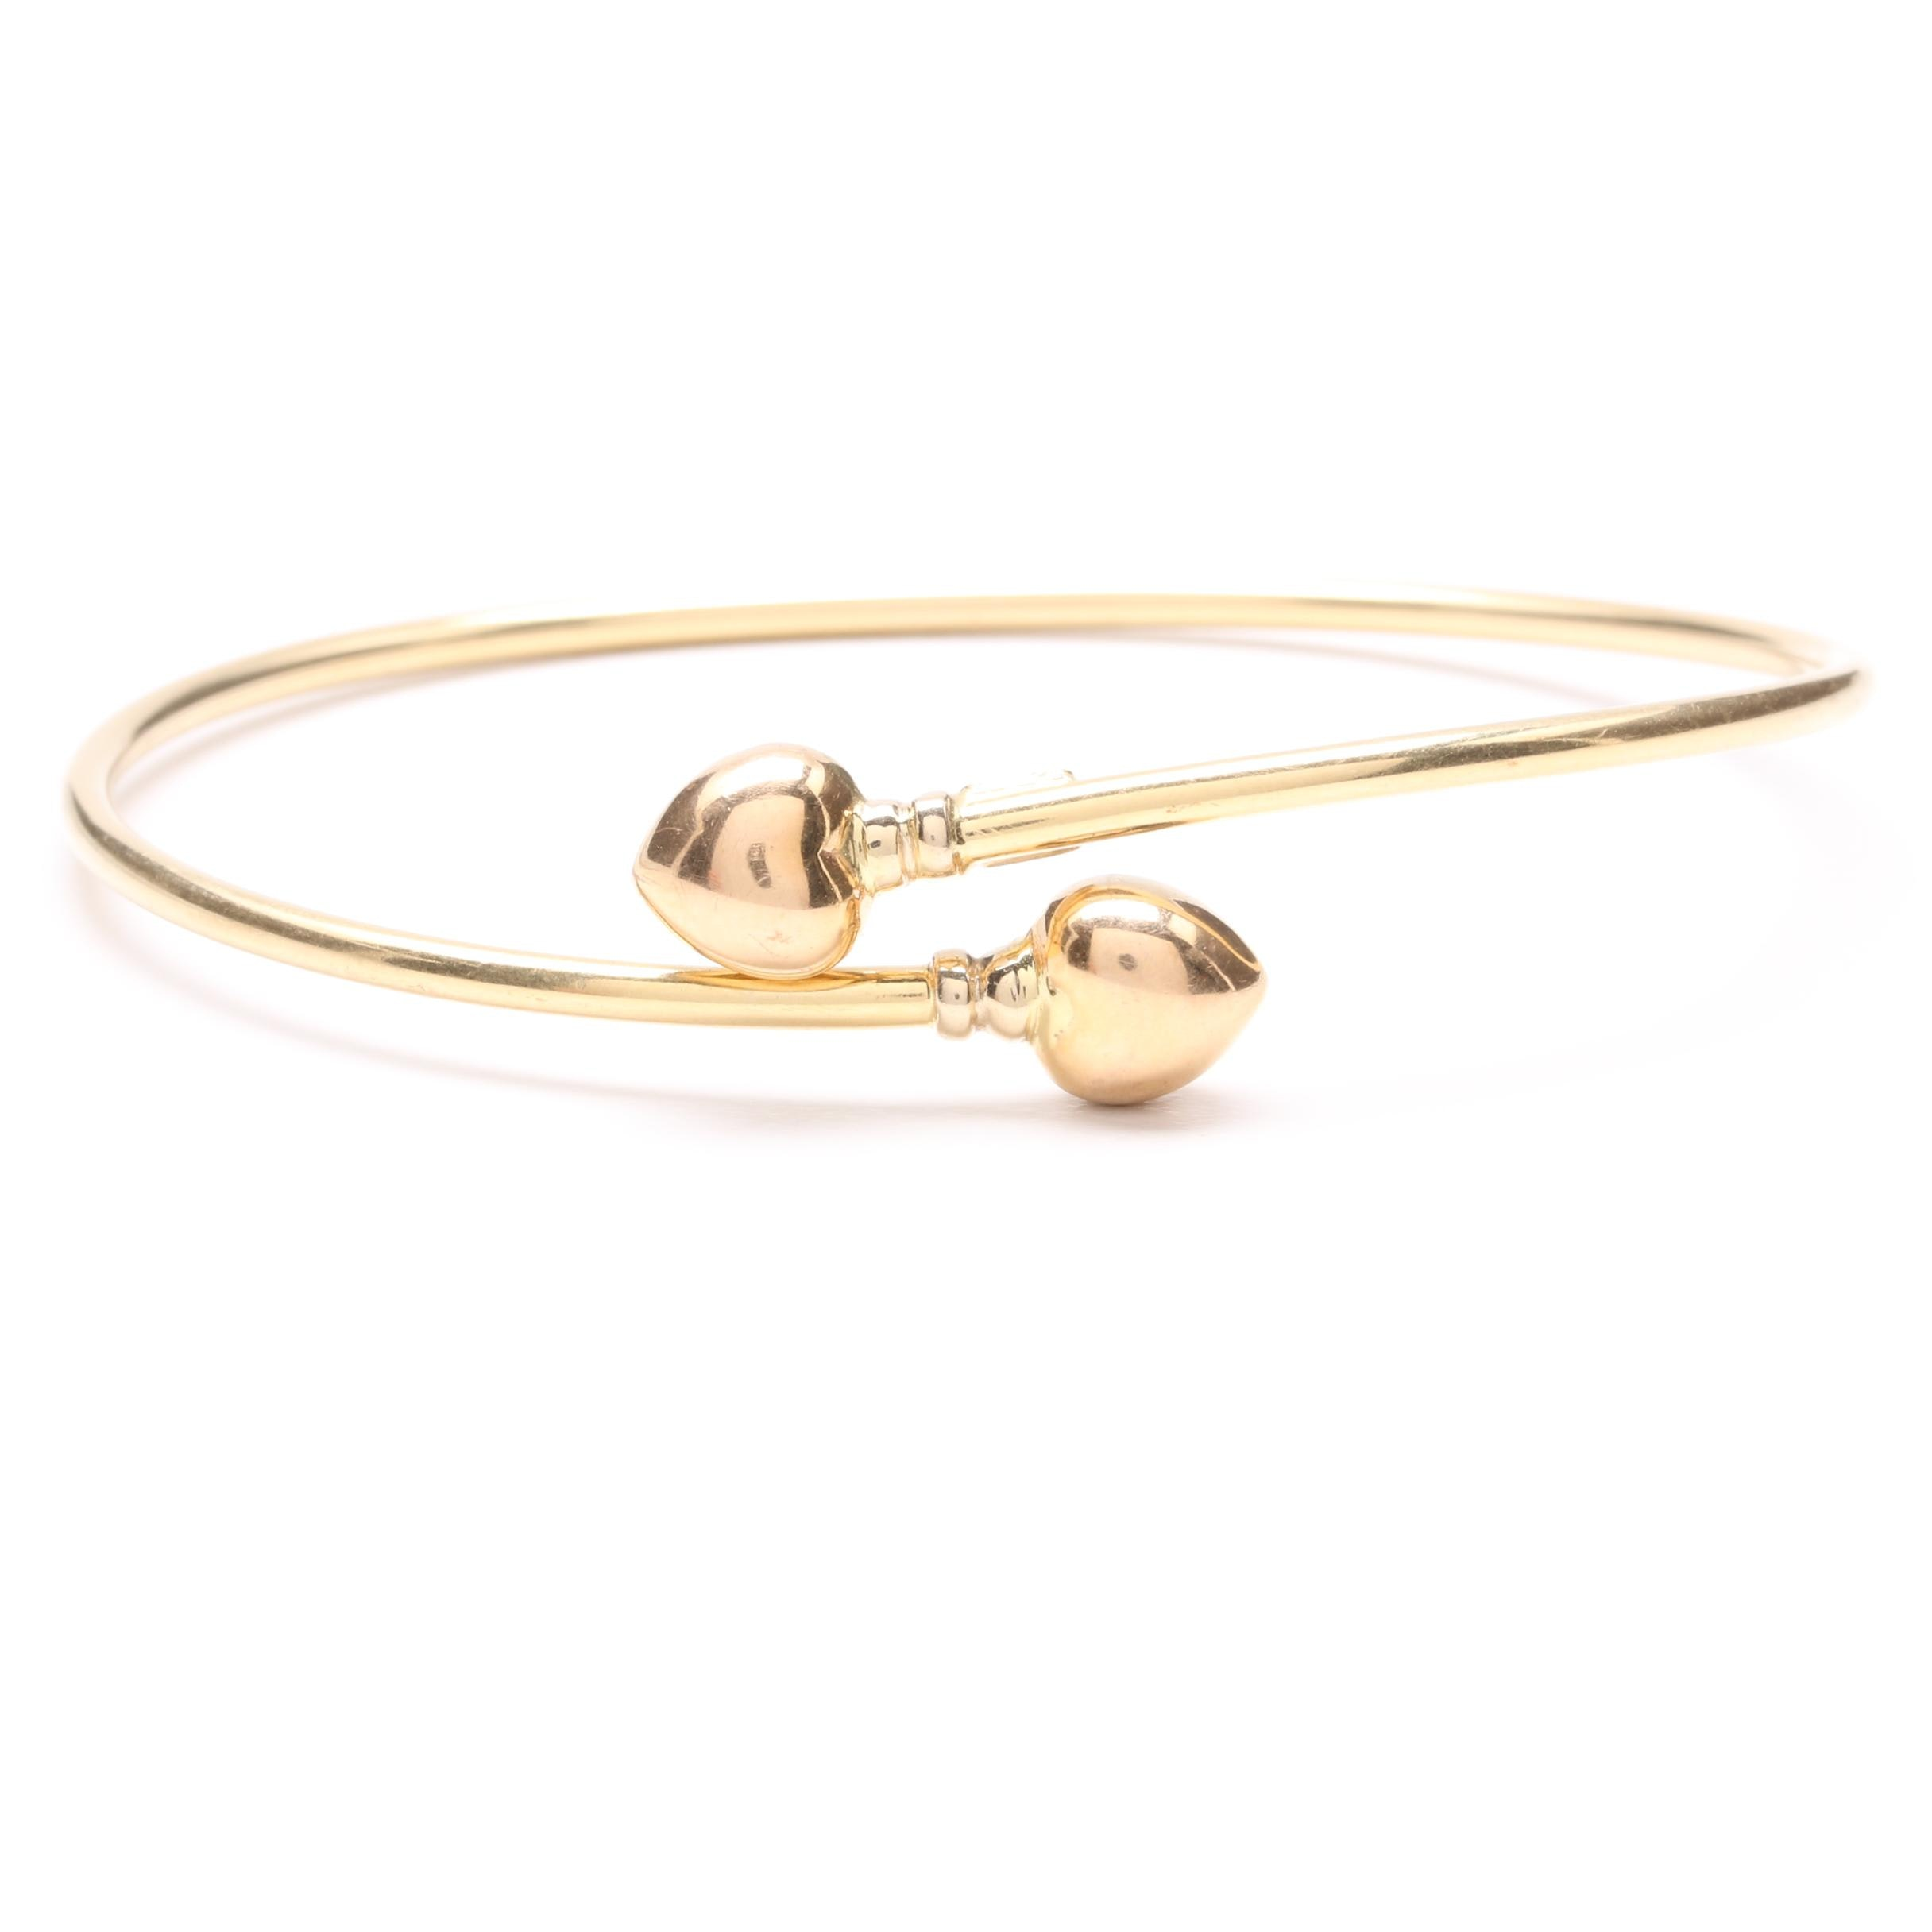 18K Yellow Gold Bangle Bracelet with Heart Accents